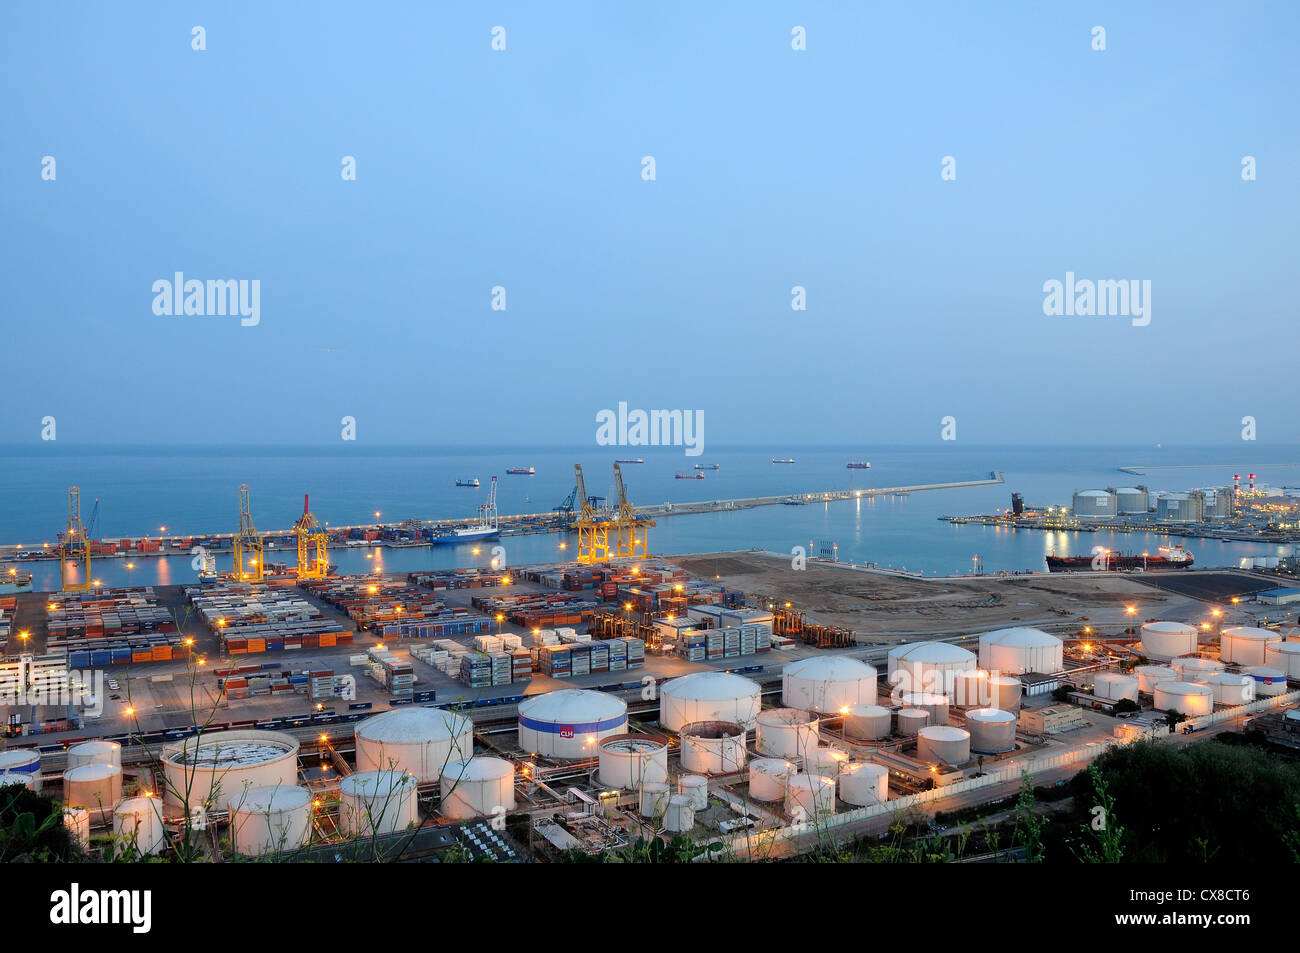 View dock of the Port of Barcelona flammable storage tank of liquefied  natural gas (of LNG) and other liquid products - Stock Image